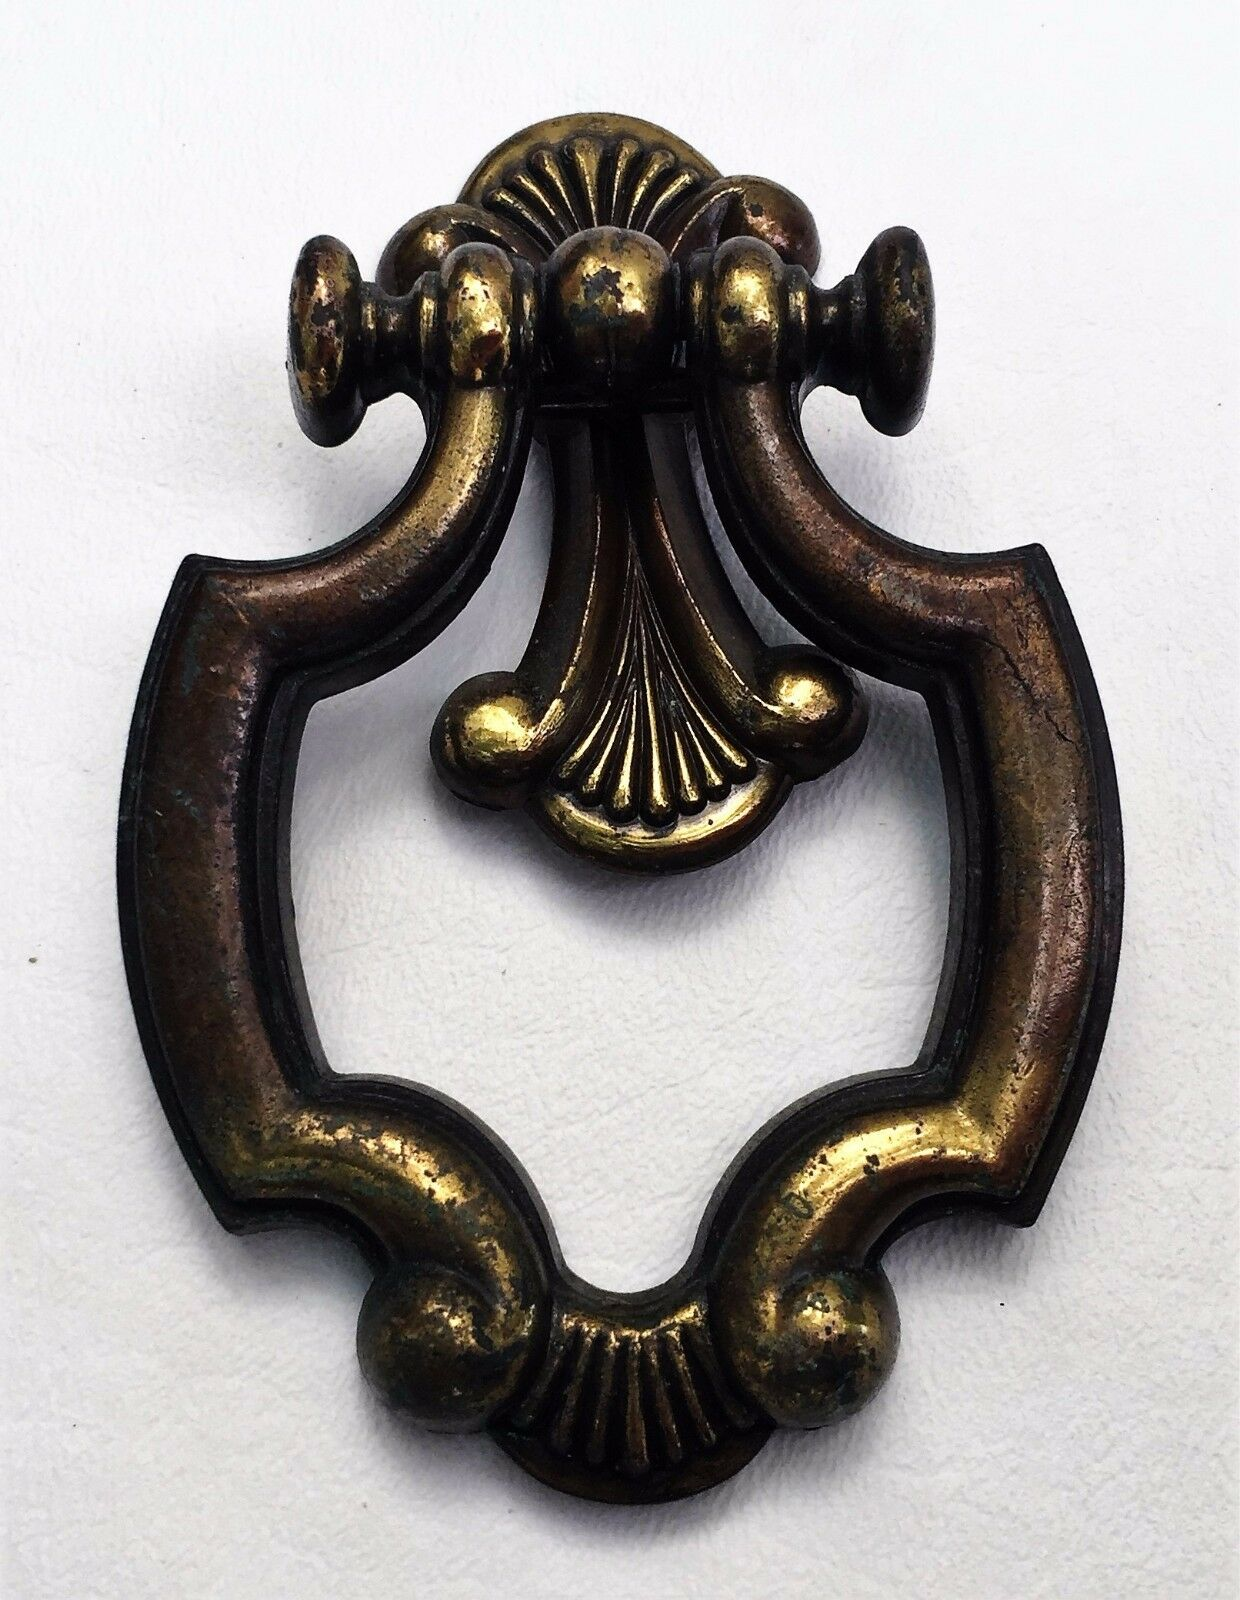 Brass French Provincial MCM Drawer Pull Hardware Vintage Cabinet Knob Ring Pull